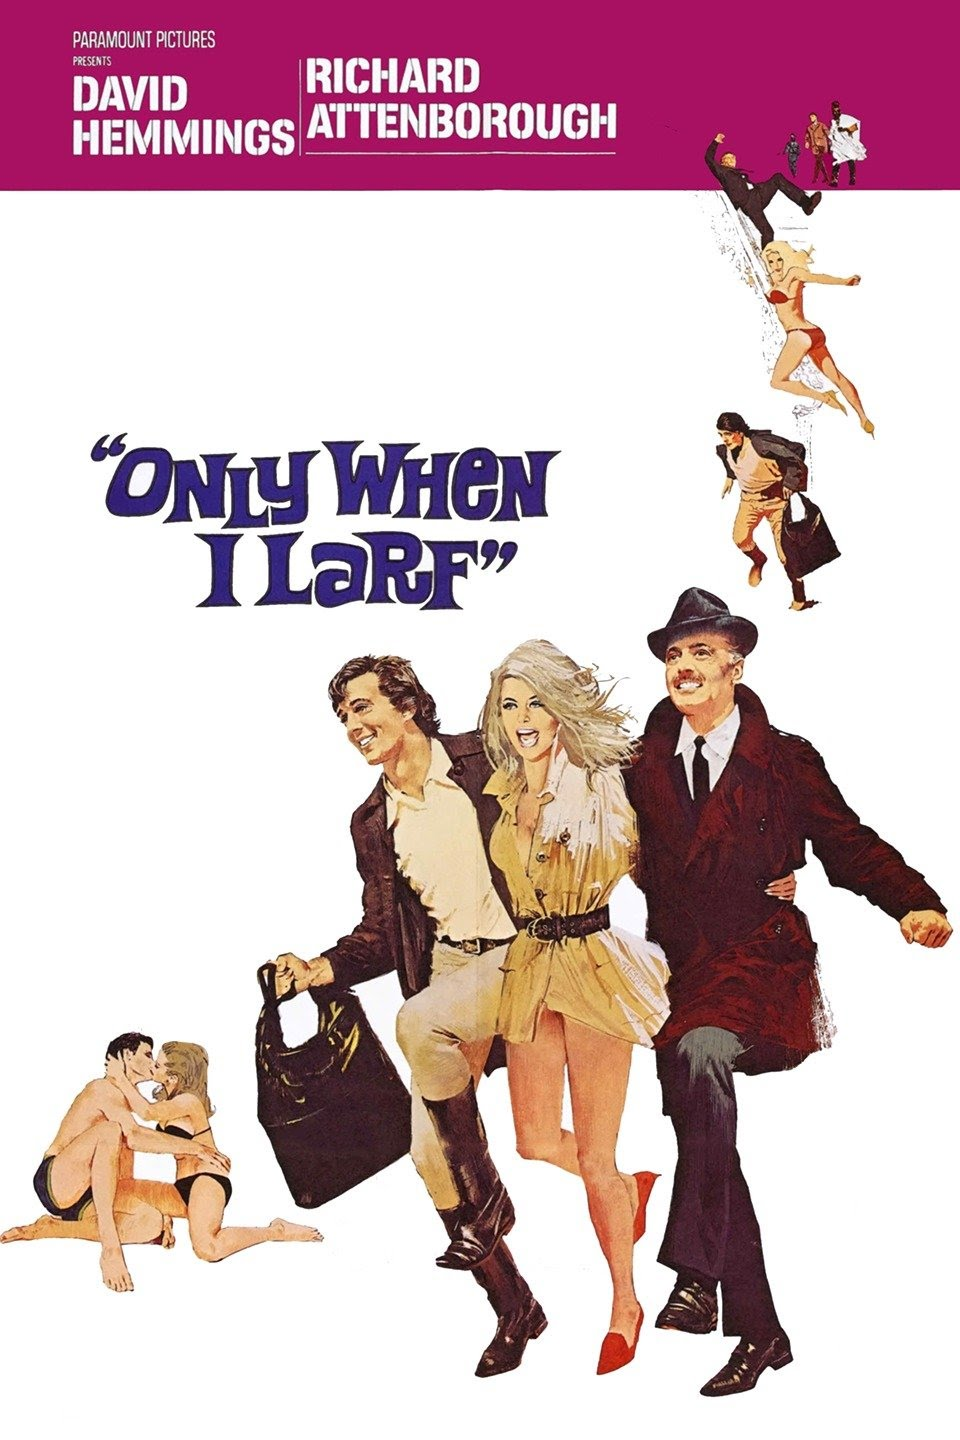 Only When I Larf (1968)***